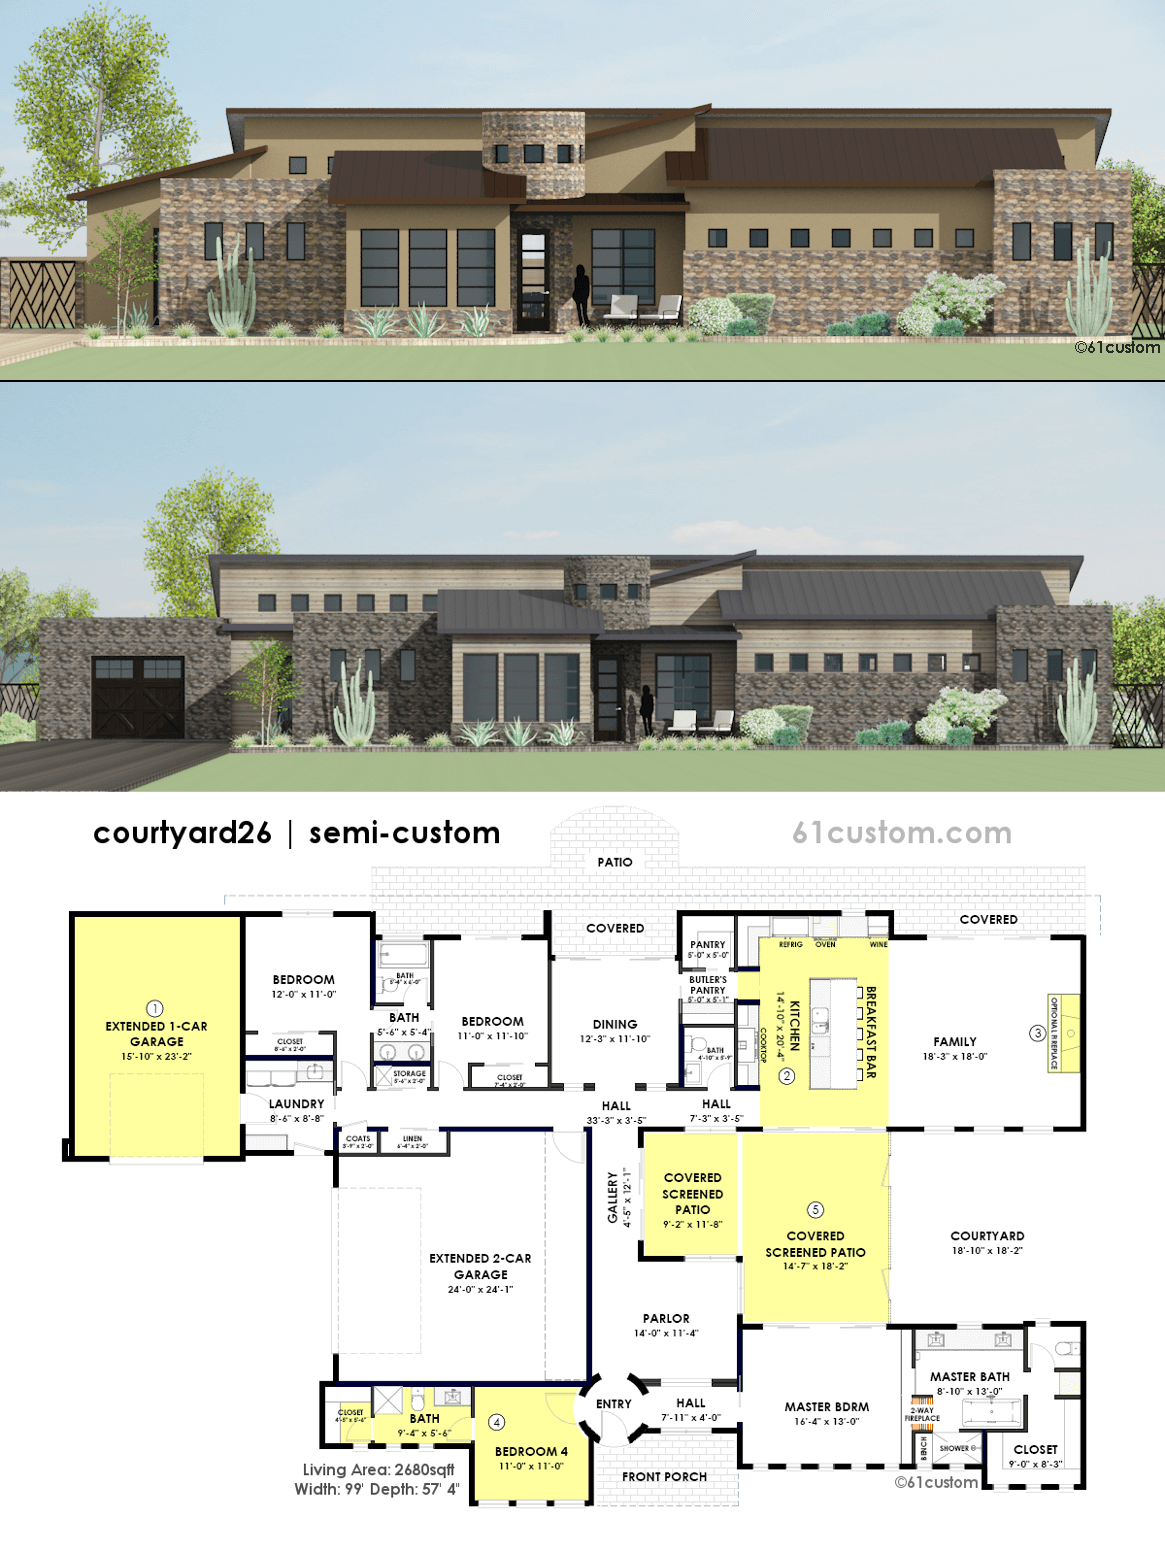 Contemporary side courtyard house plan 61custom for Contemporary mansion floor plans